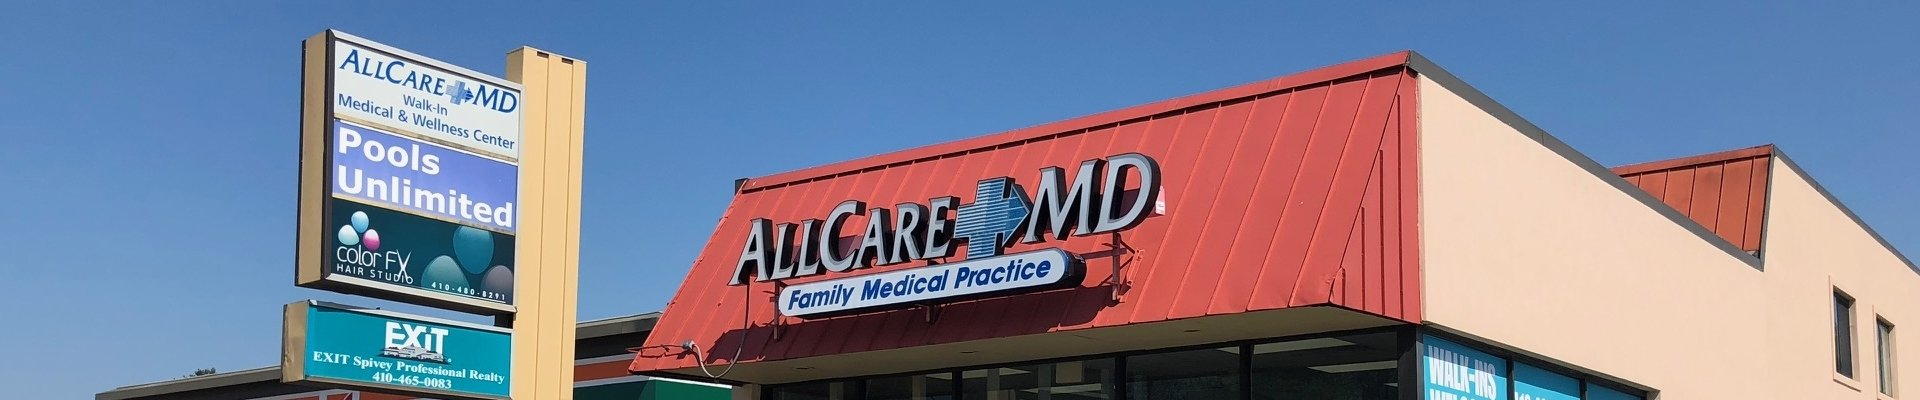 AllCare Family Medicine & Urgent Care - Ellicott City, MD